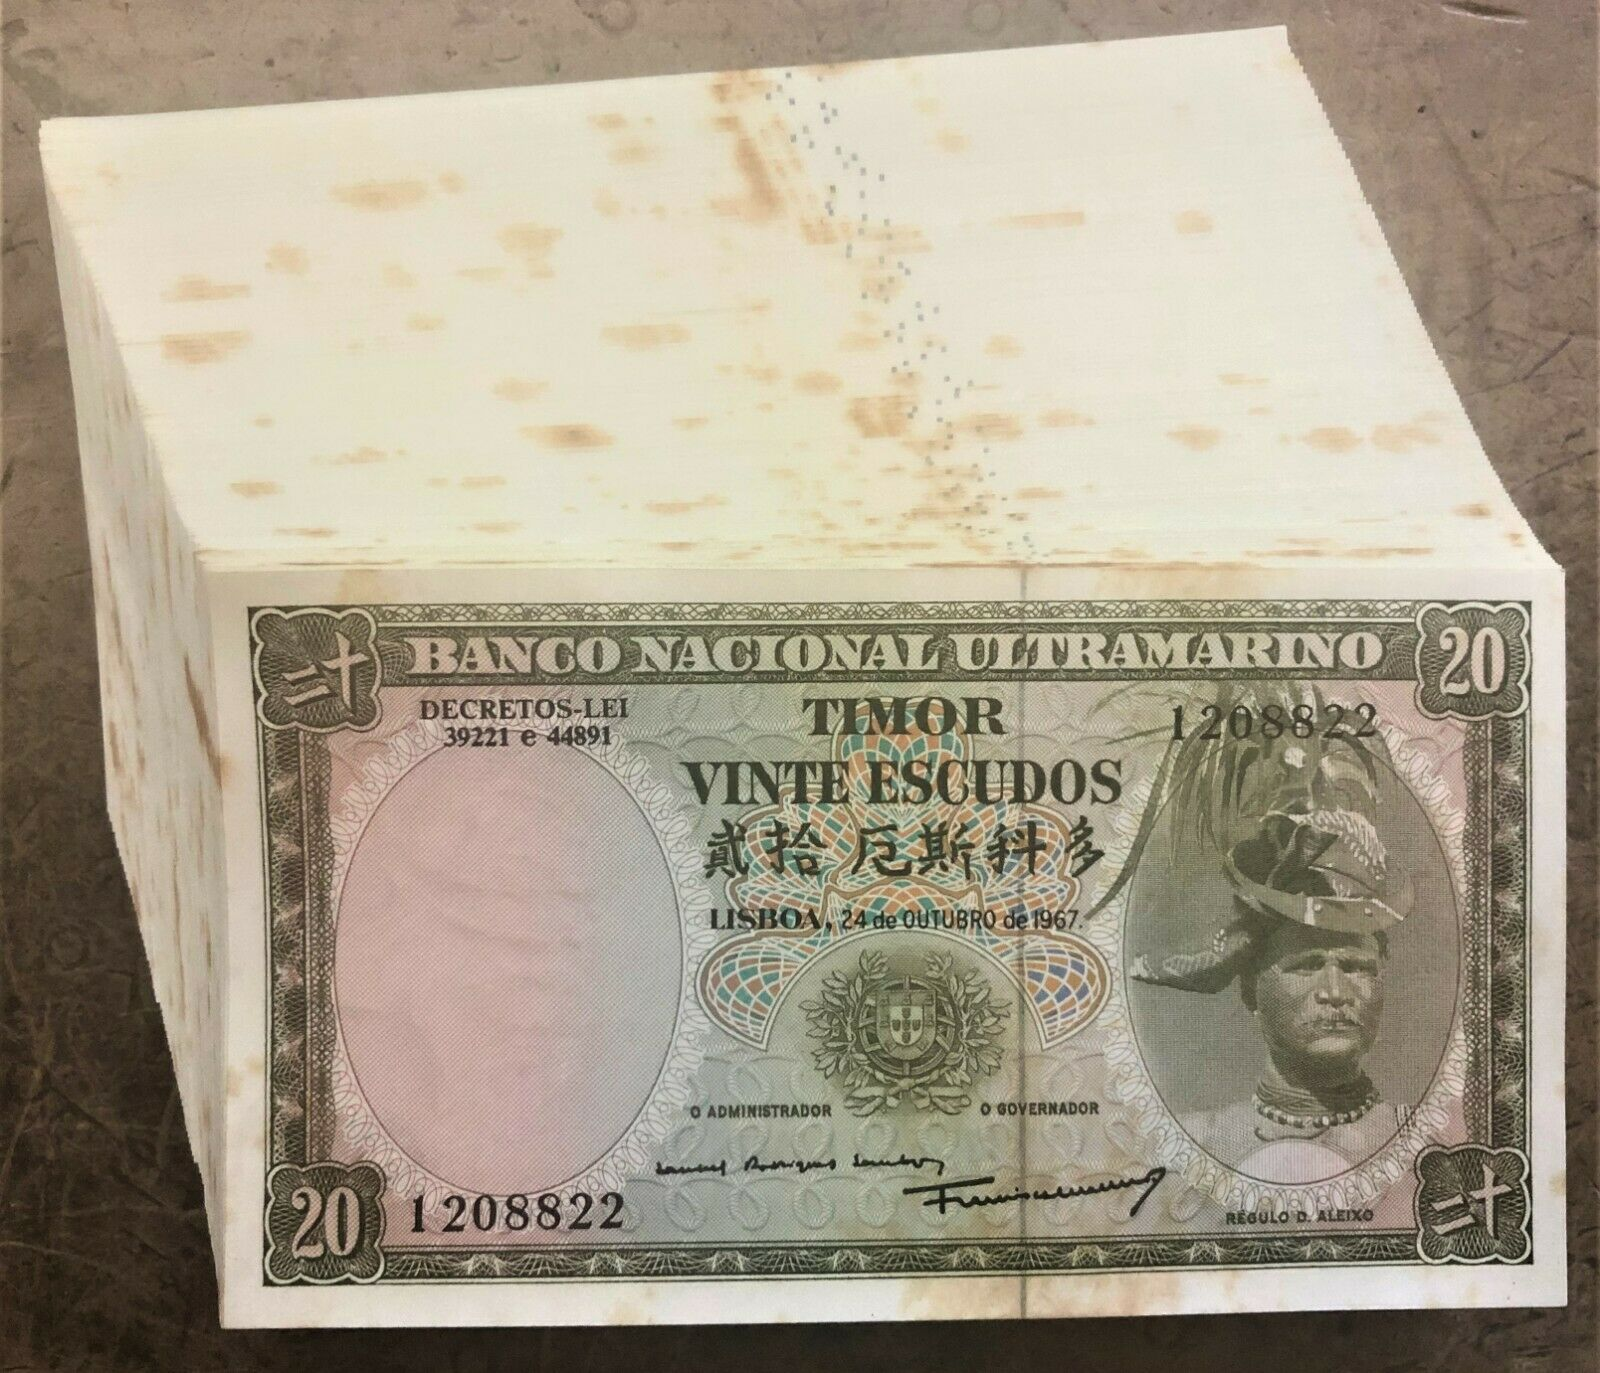 WHOLESALE GROUP of 100 TIMOR 20 ESCUDOS NOTES of 1967 PICK# 26a UNUSED BUT SPOTS